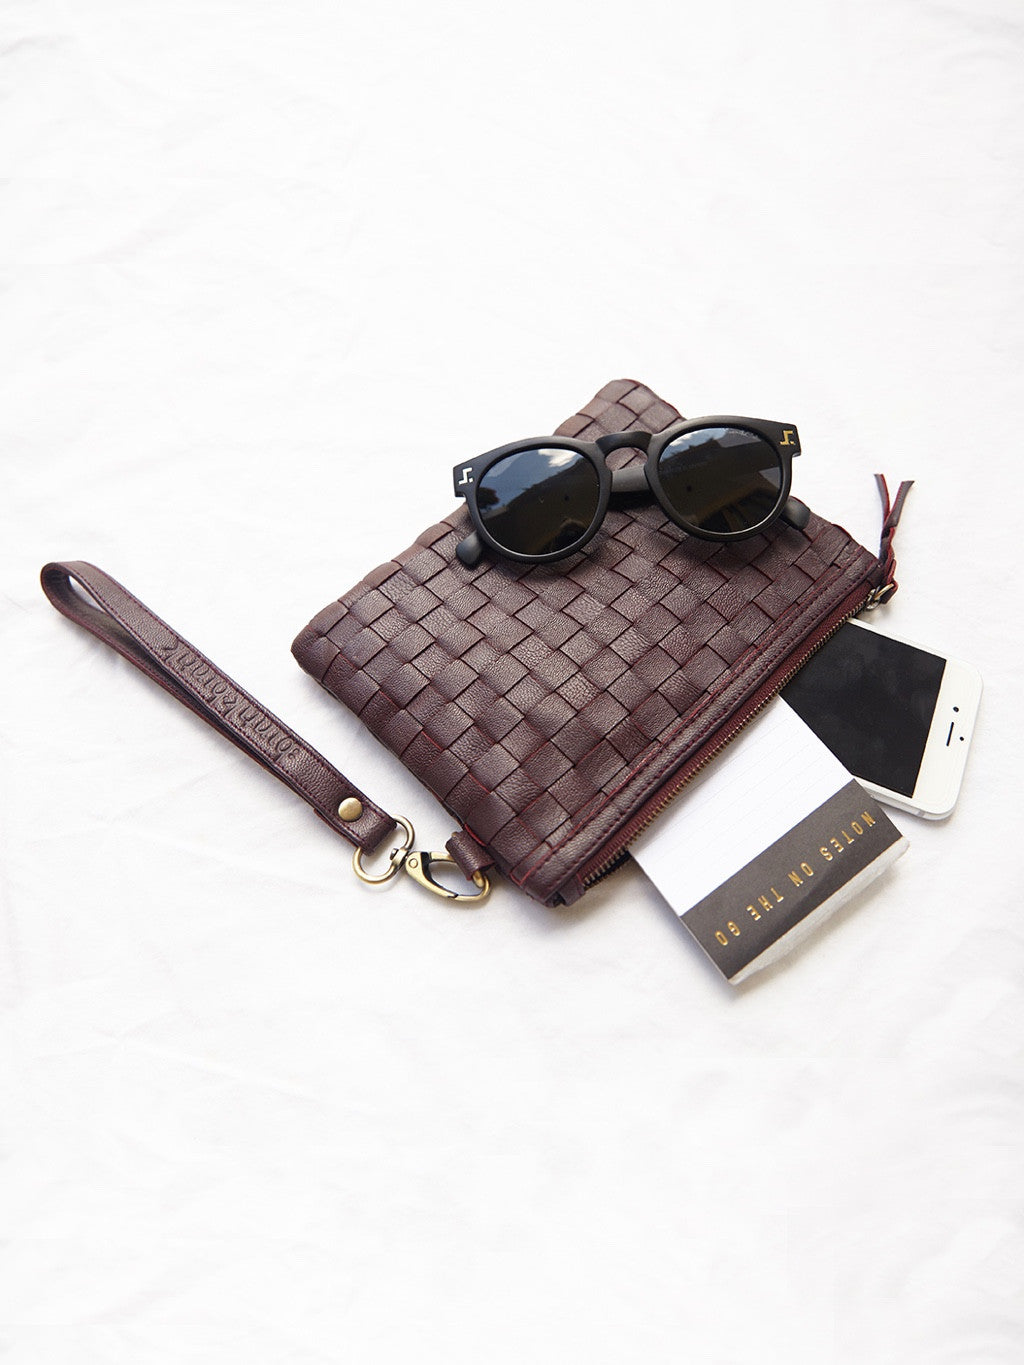 Maroon Woven Leather Wallet/Clutch - BintikBintik